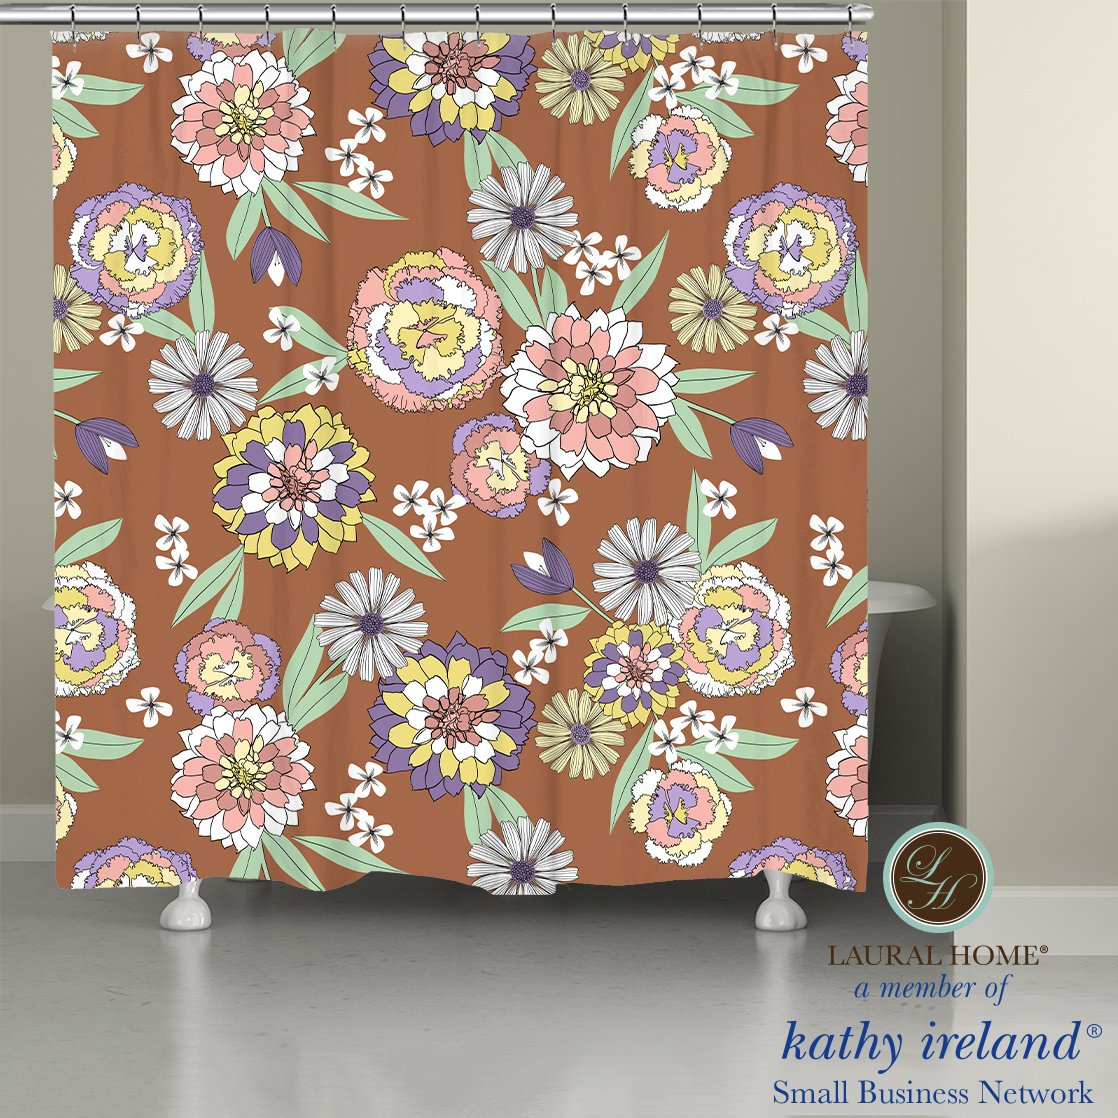 Laural Home kathy ireland® Small Business Network Member Retro Floral Bursts Shower Curtain